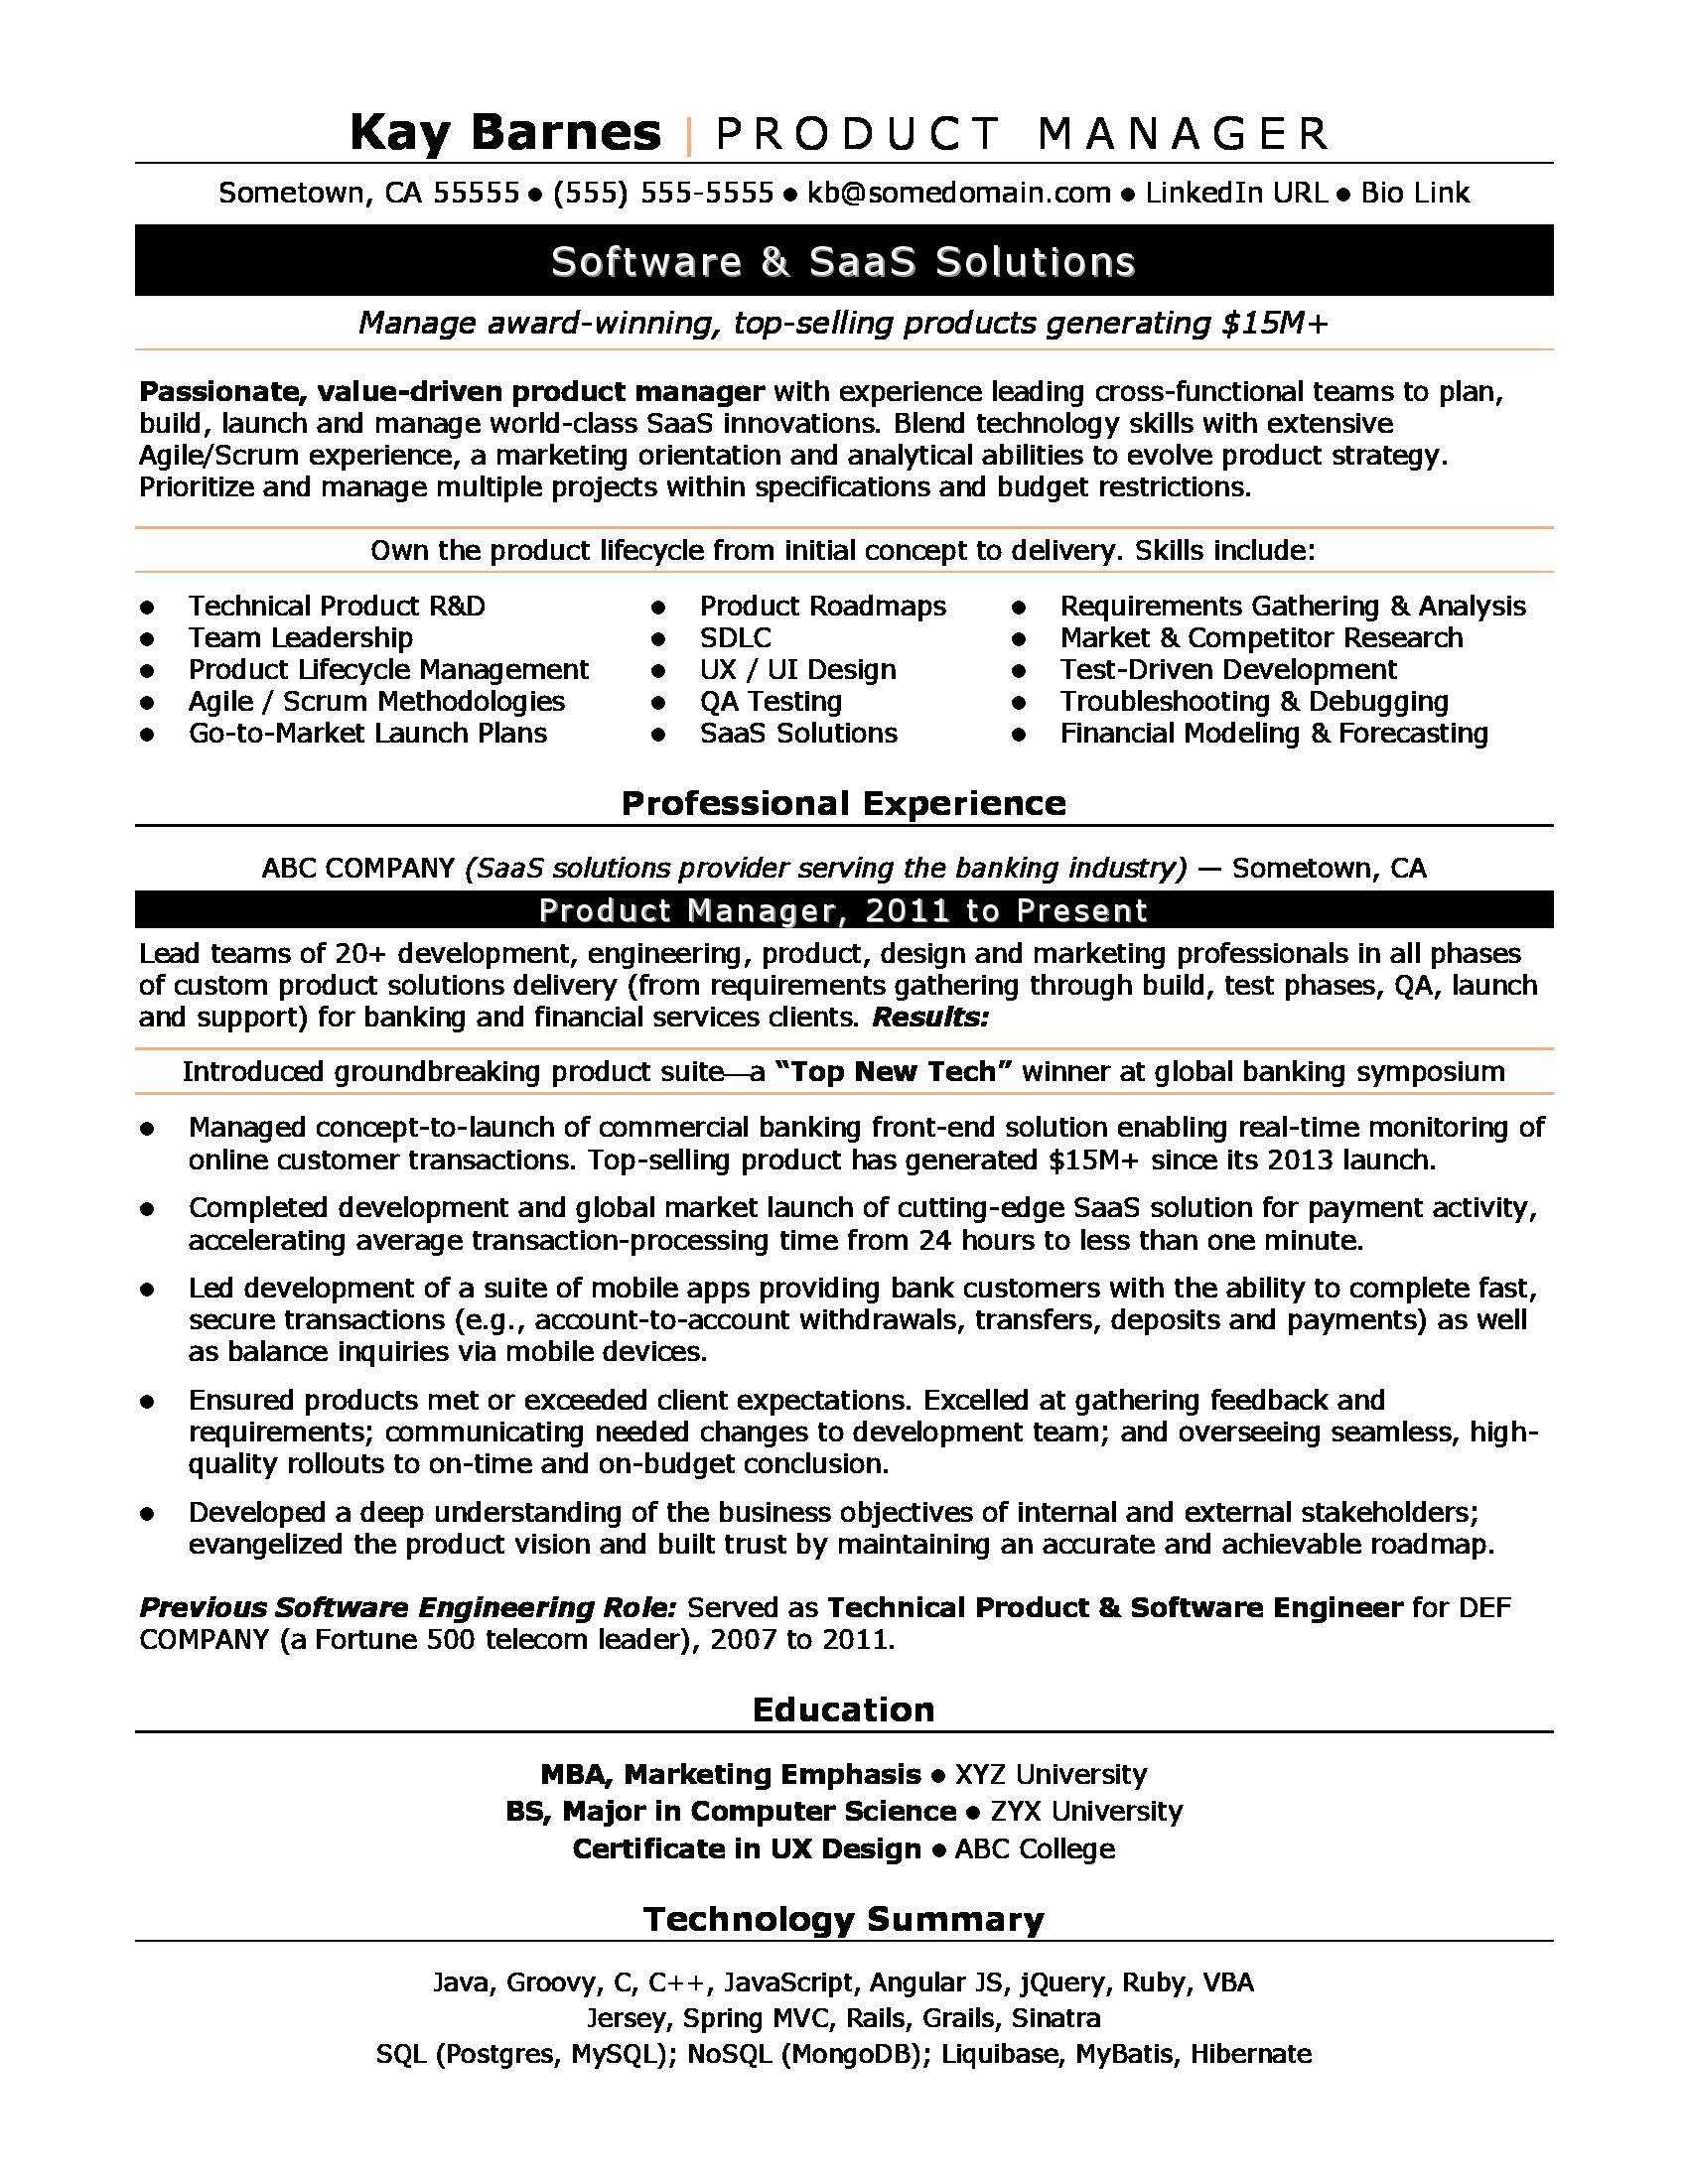 product manager resume sample monster production control productmanager database Resume Production Control Manager Resume